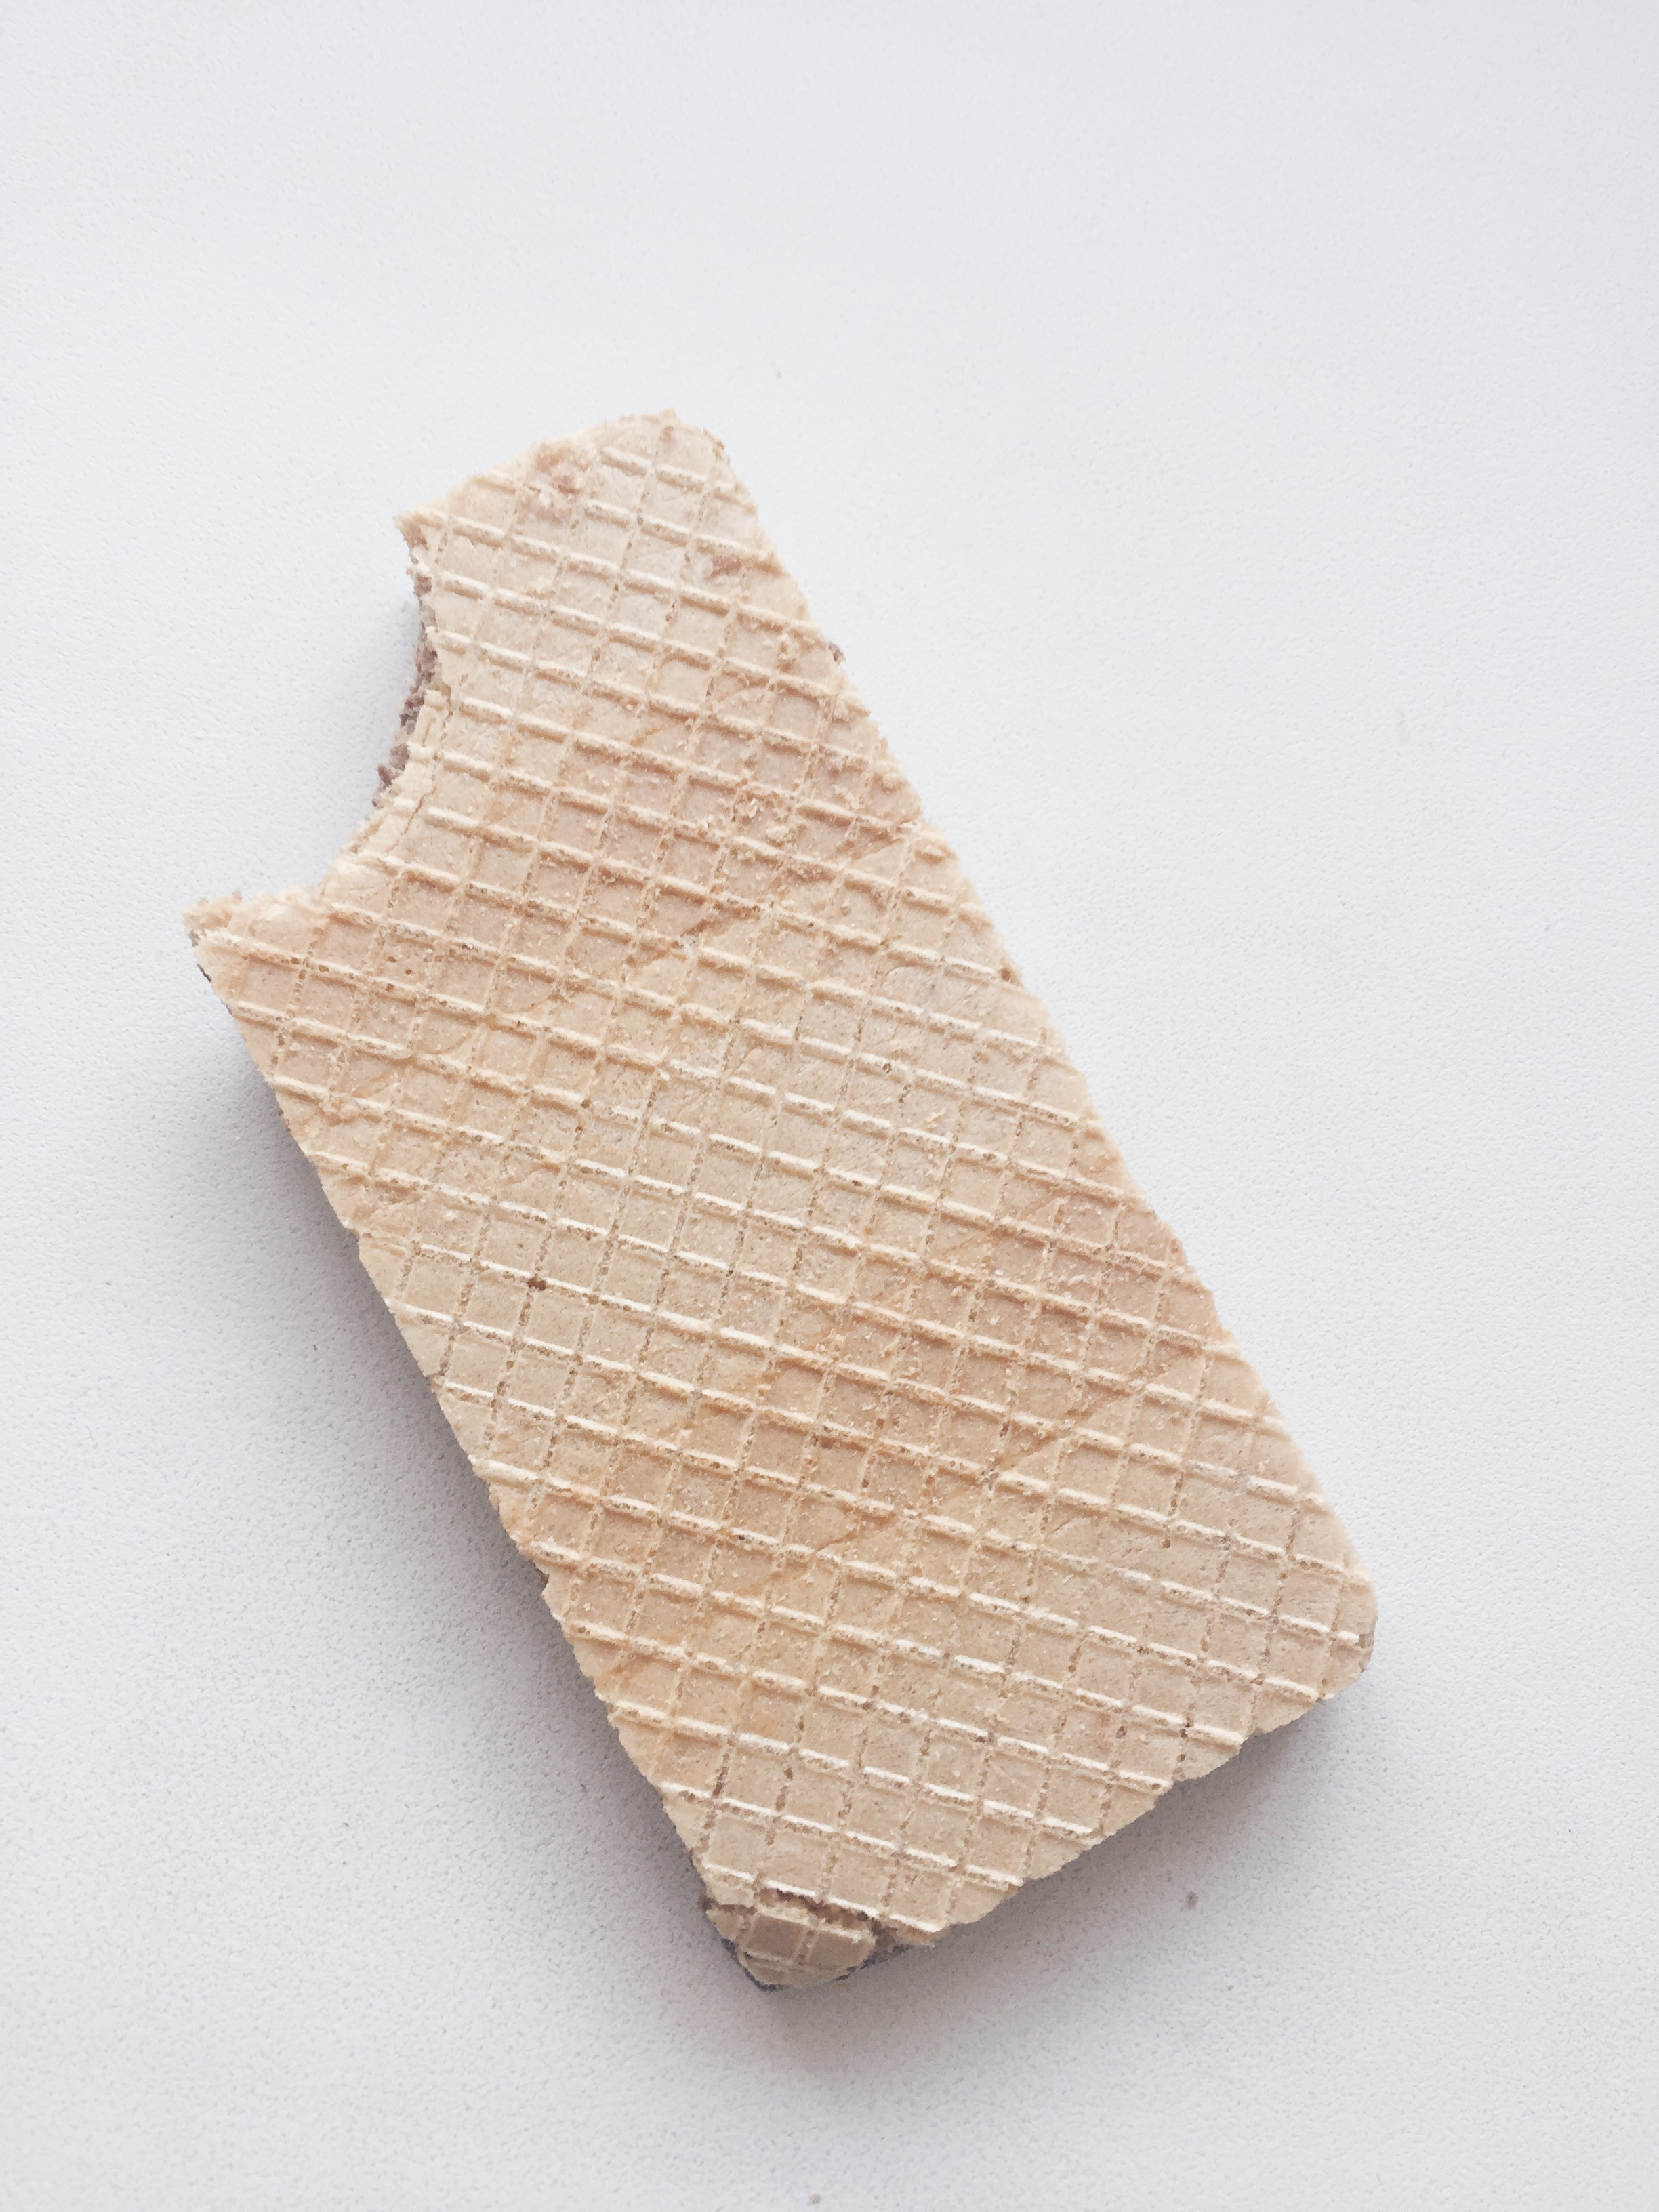 A chocolate filled wafer.